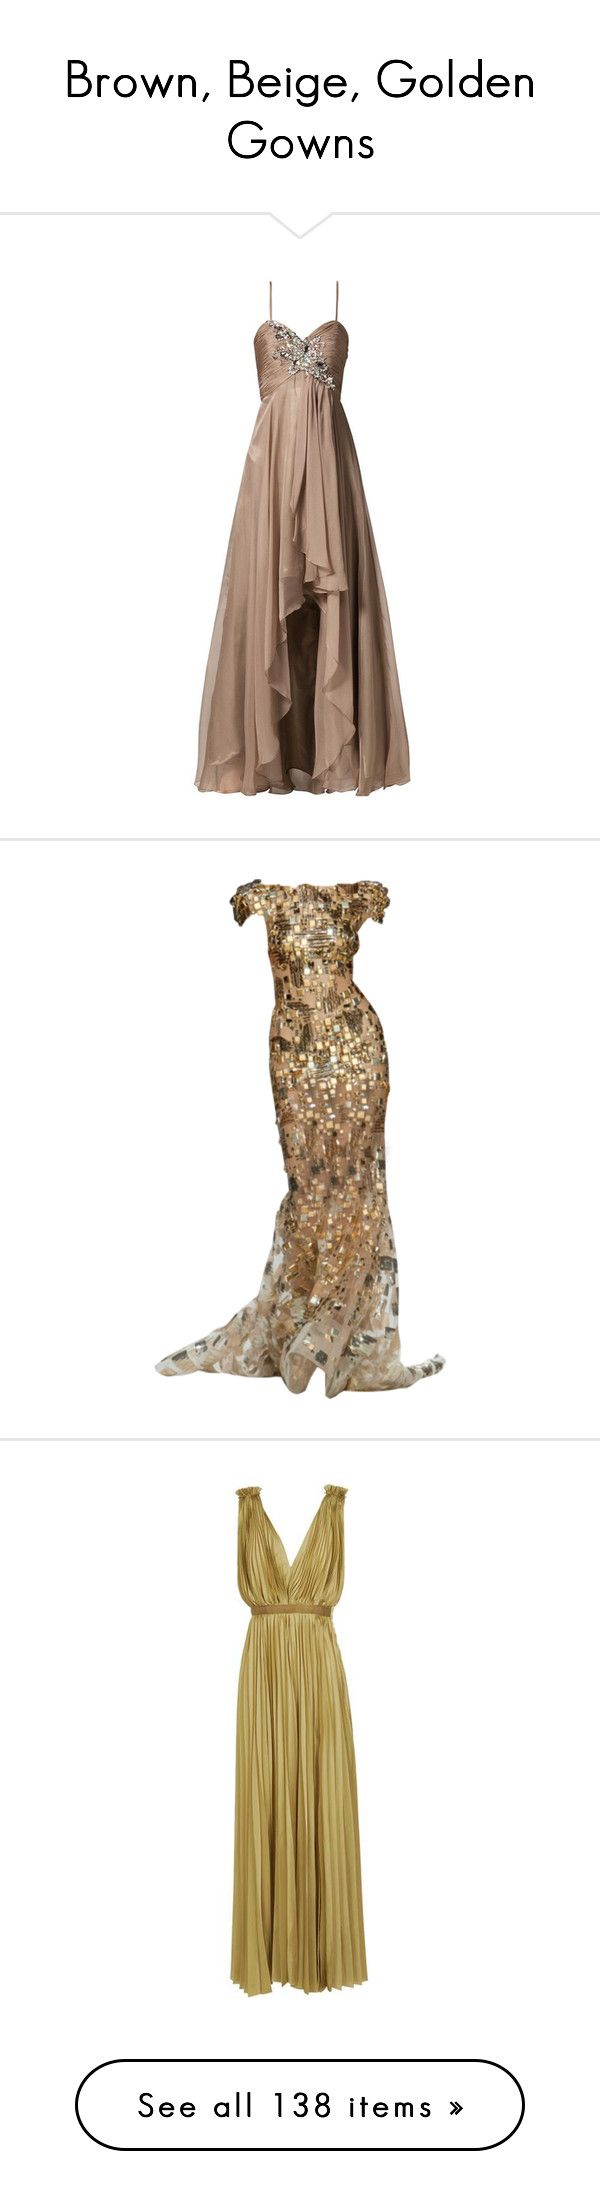 """""""Brown, Beige, Golden Gowns"""" by srta-sr ❤ liked on Polyvore featuring smrgowns, dresses, gowns, long dresses, formal dresses, beige, unique evening gowns, brown dress, unique evening dresses and beige dress"""